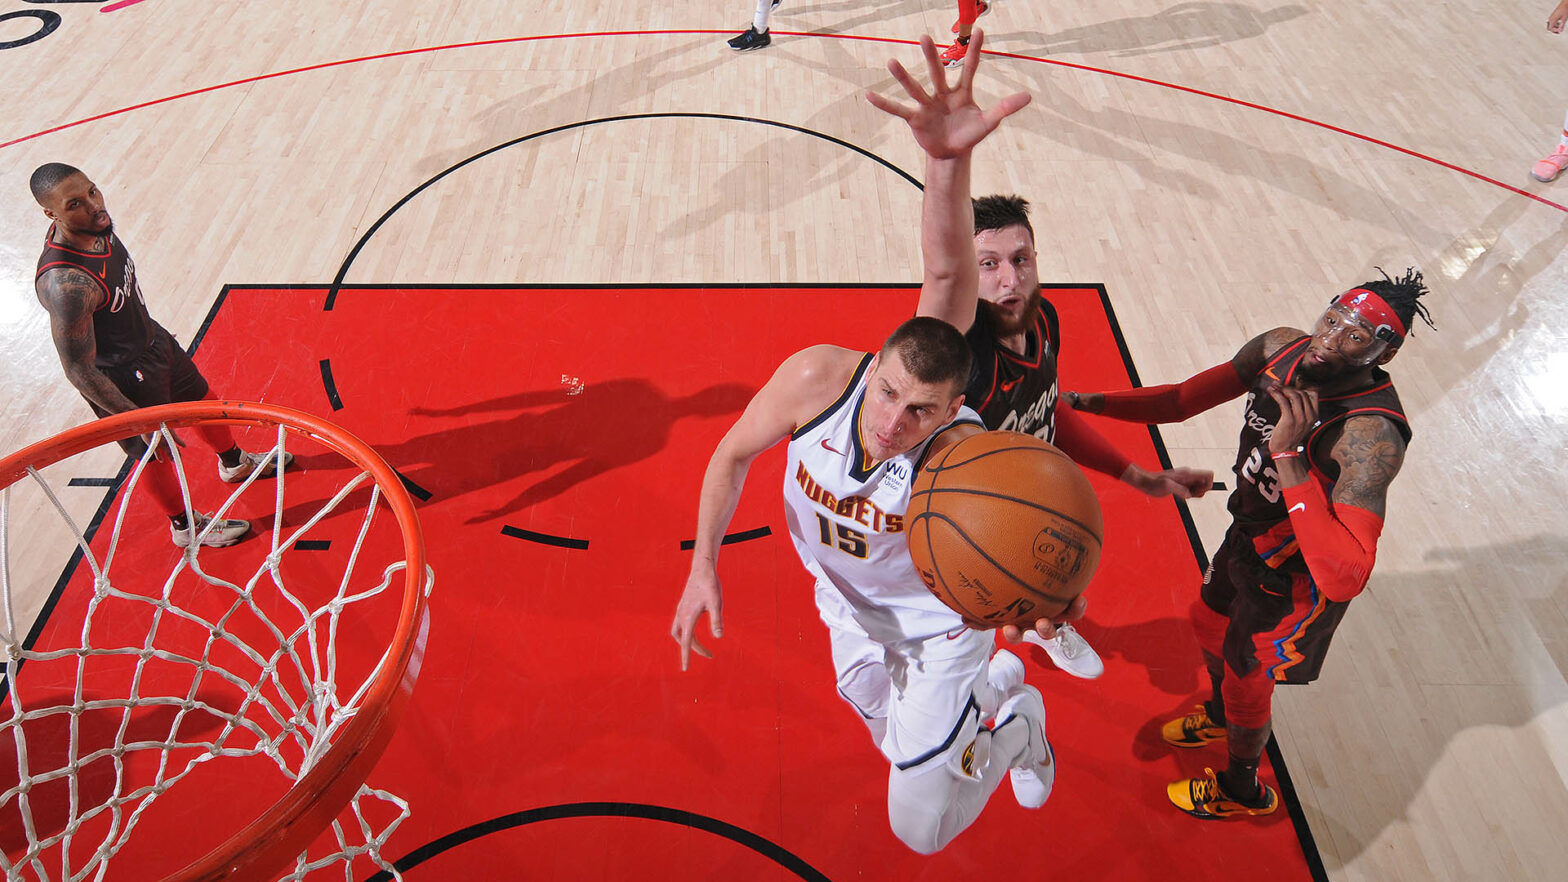 Series Preview: Depth, defense will be key in the Nuggets Blazers series